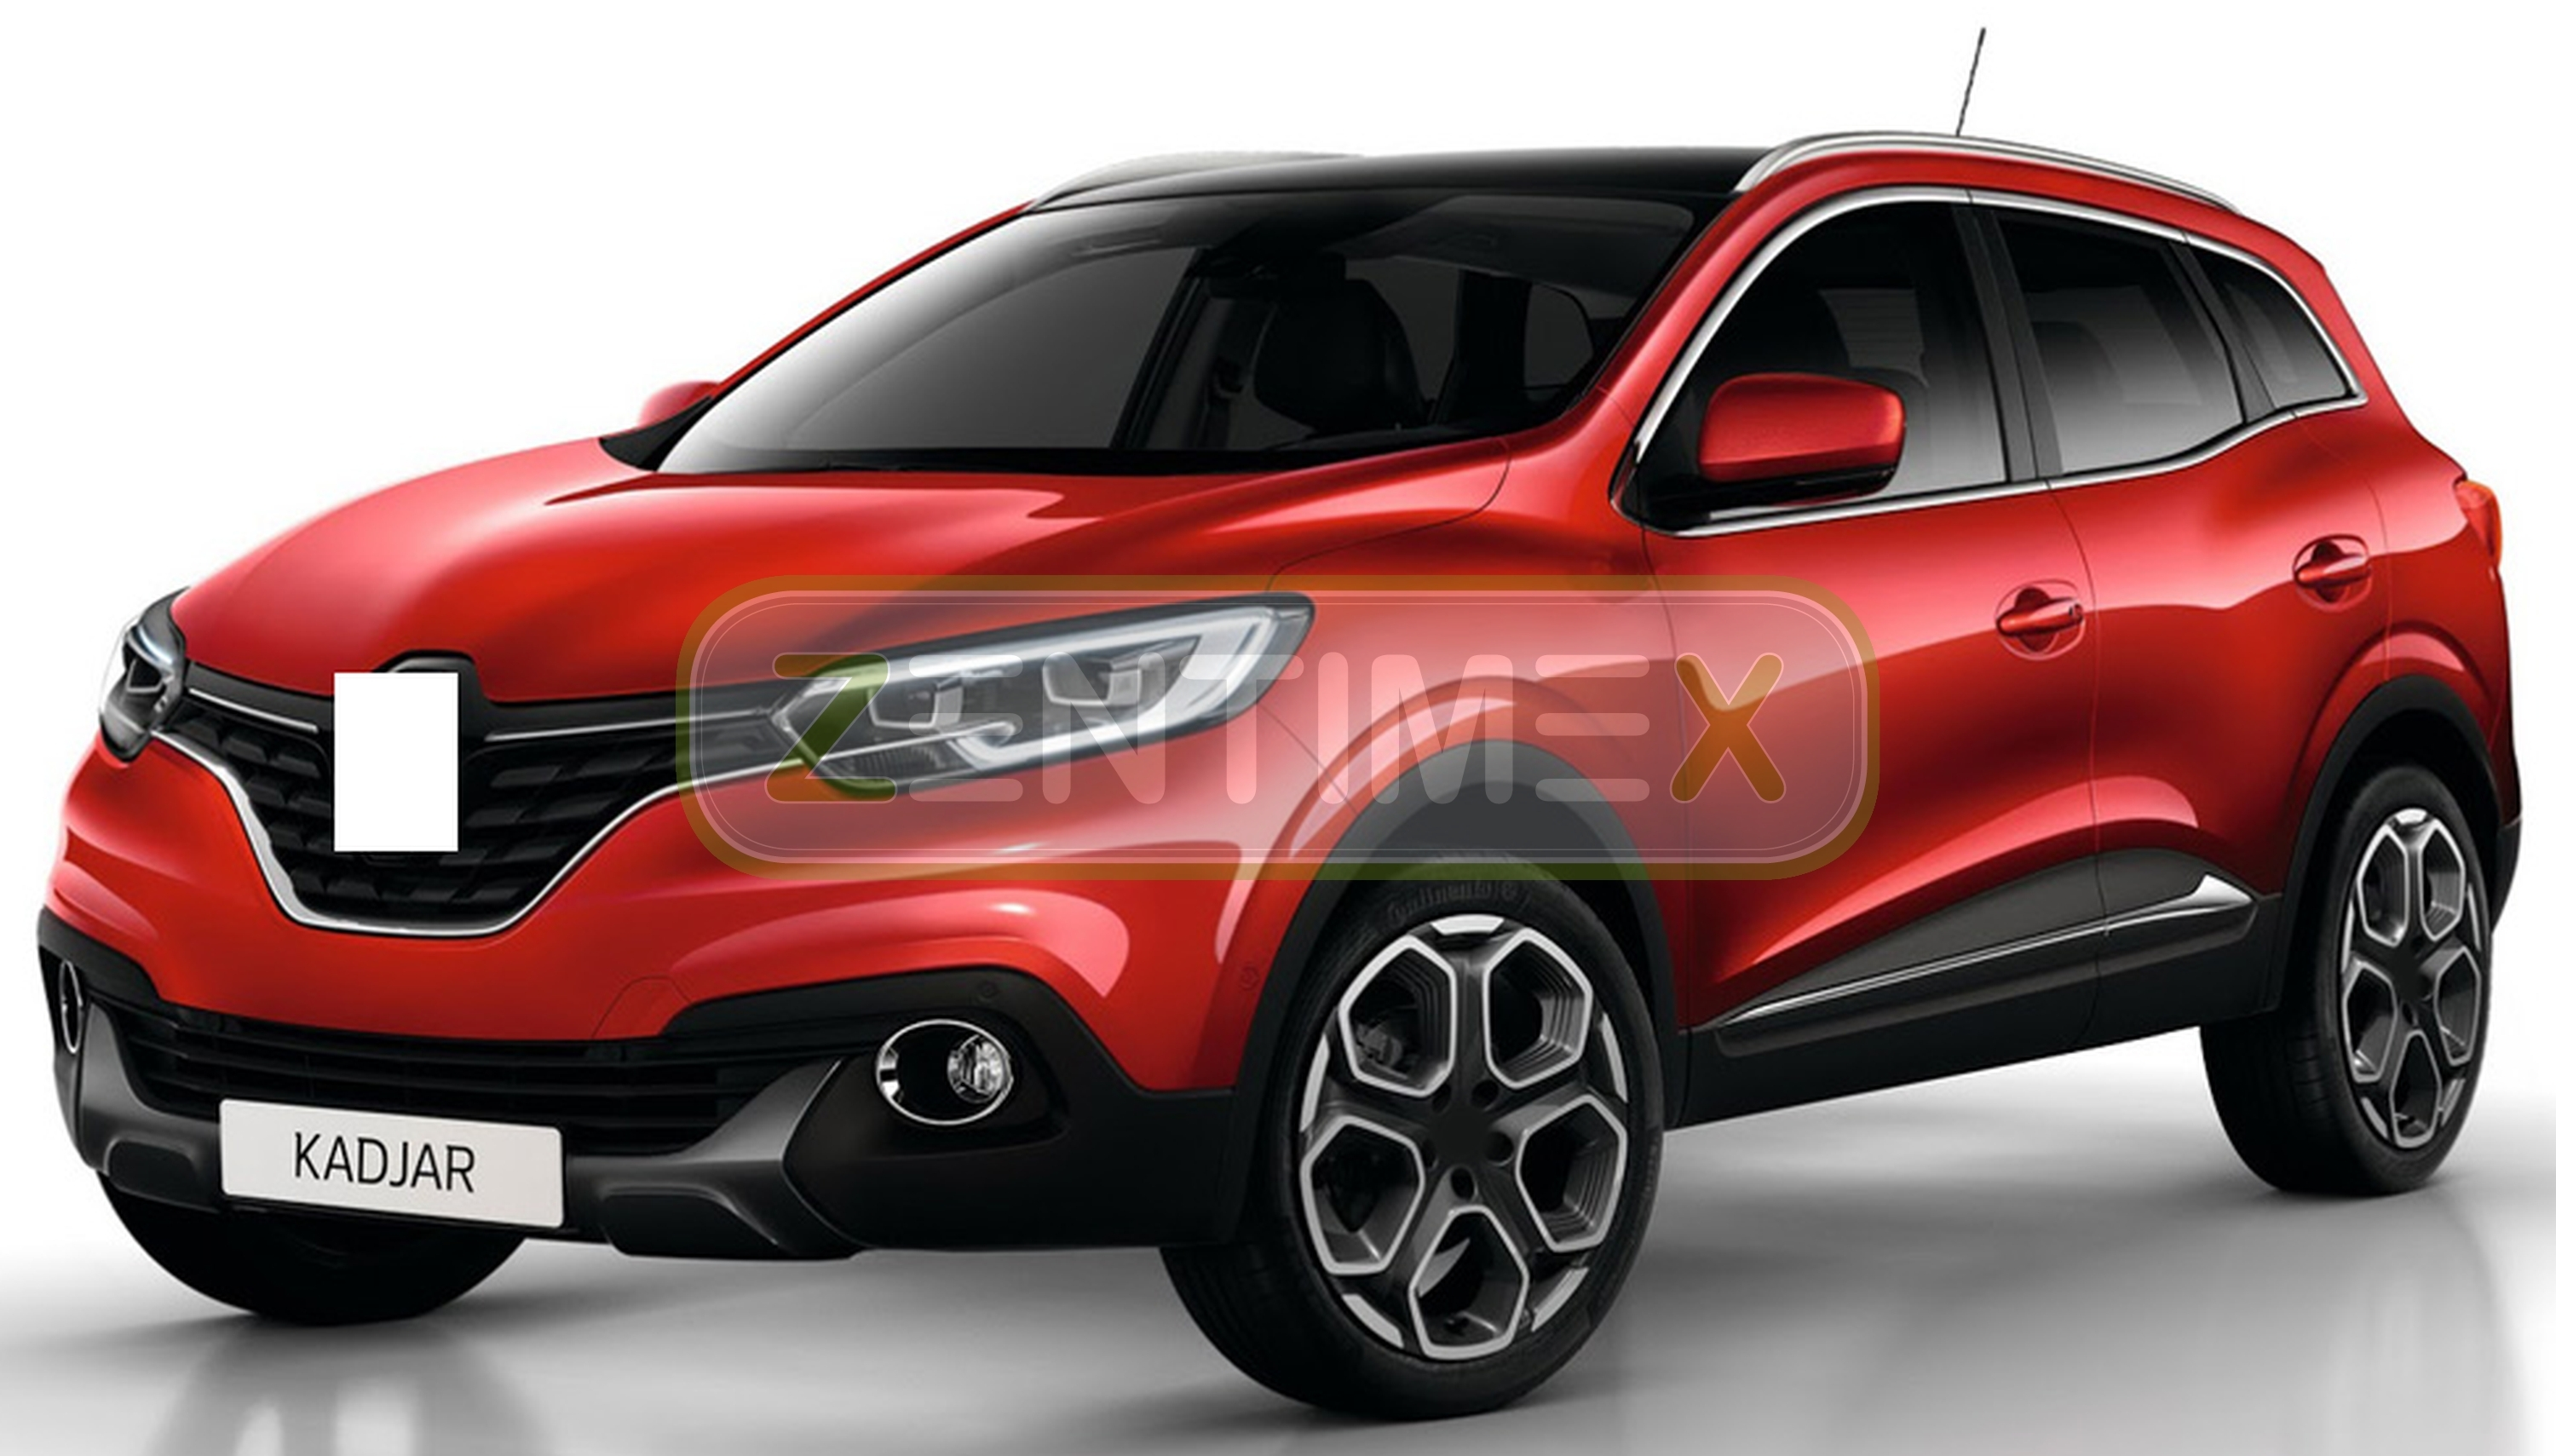 geriffelte kofferraumwanne f r renault kadjar life steilheck gel ndewagen suv 5 ebay. Black Bedroom Furniture Sets. Home Design Ideas